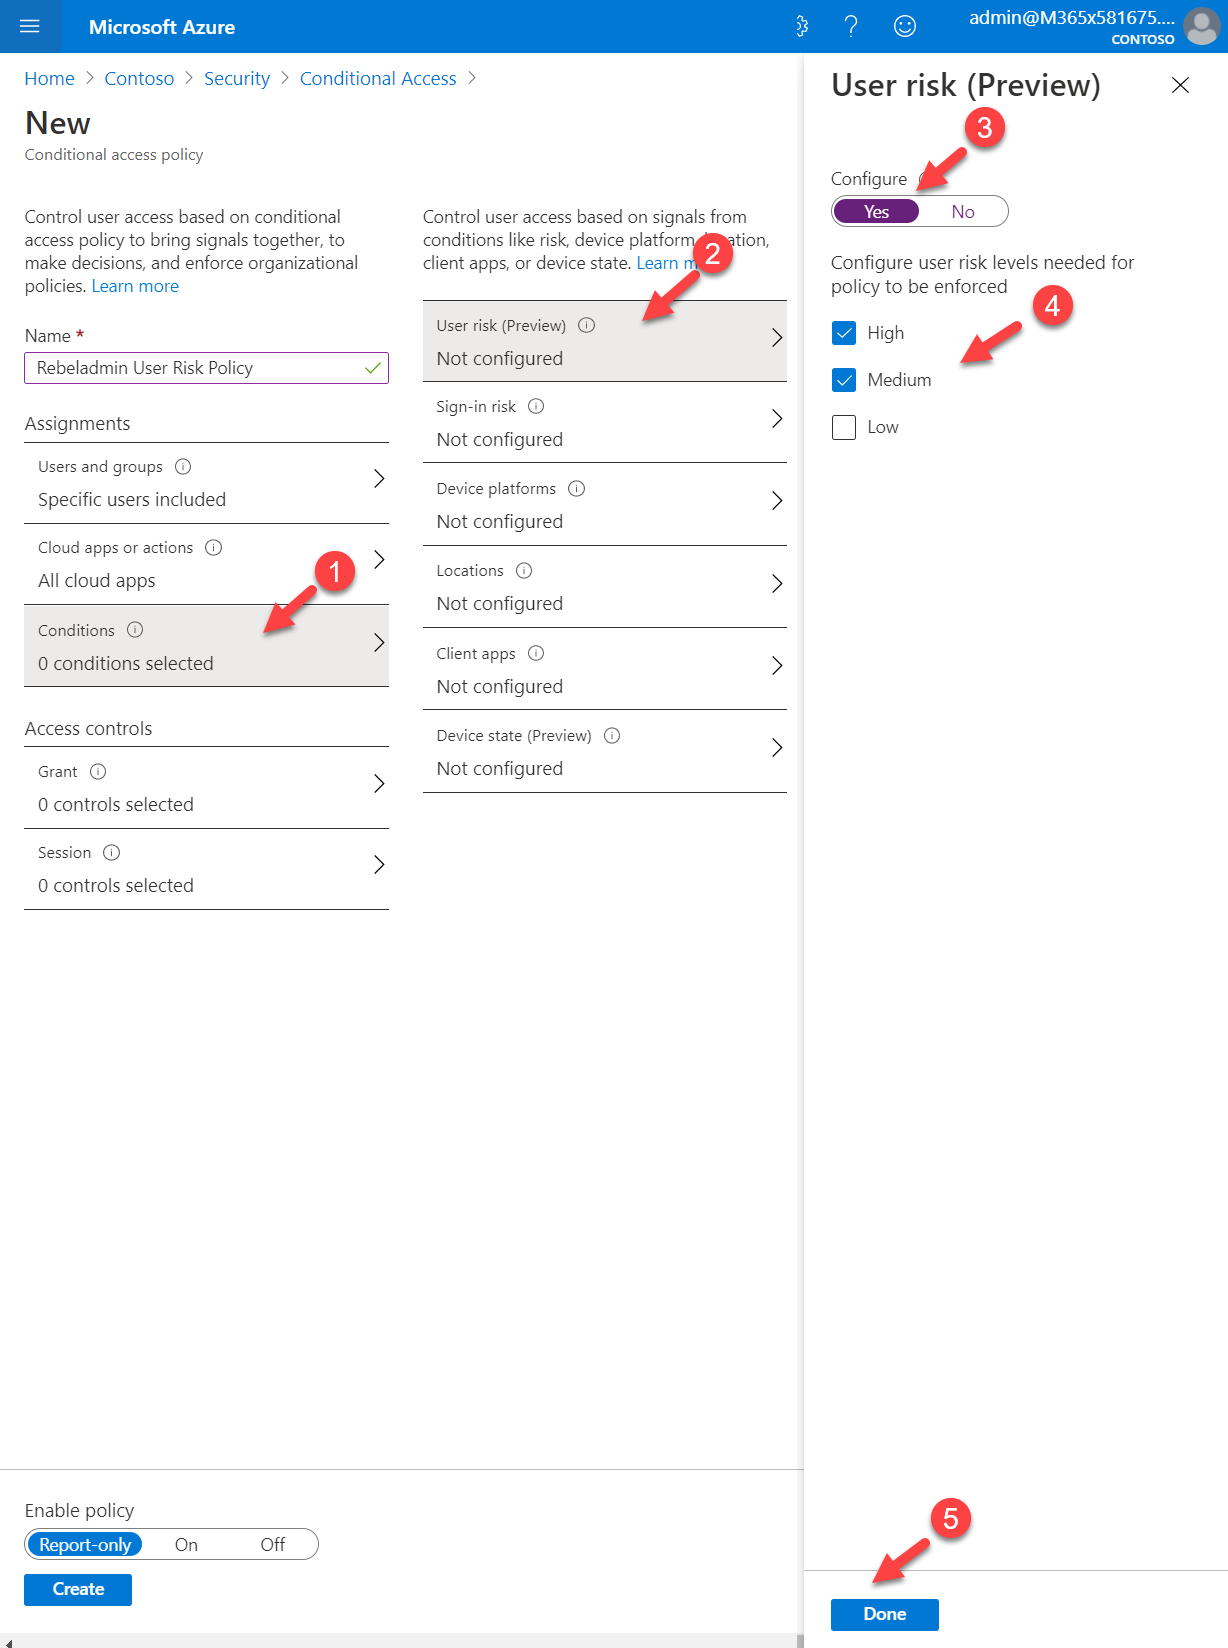 Conditional access policy condition settings